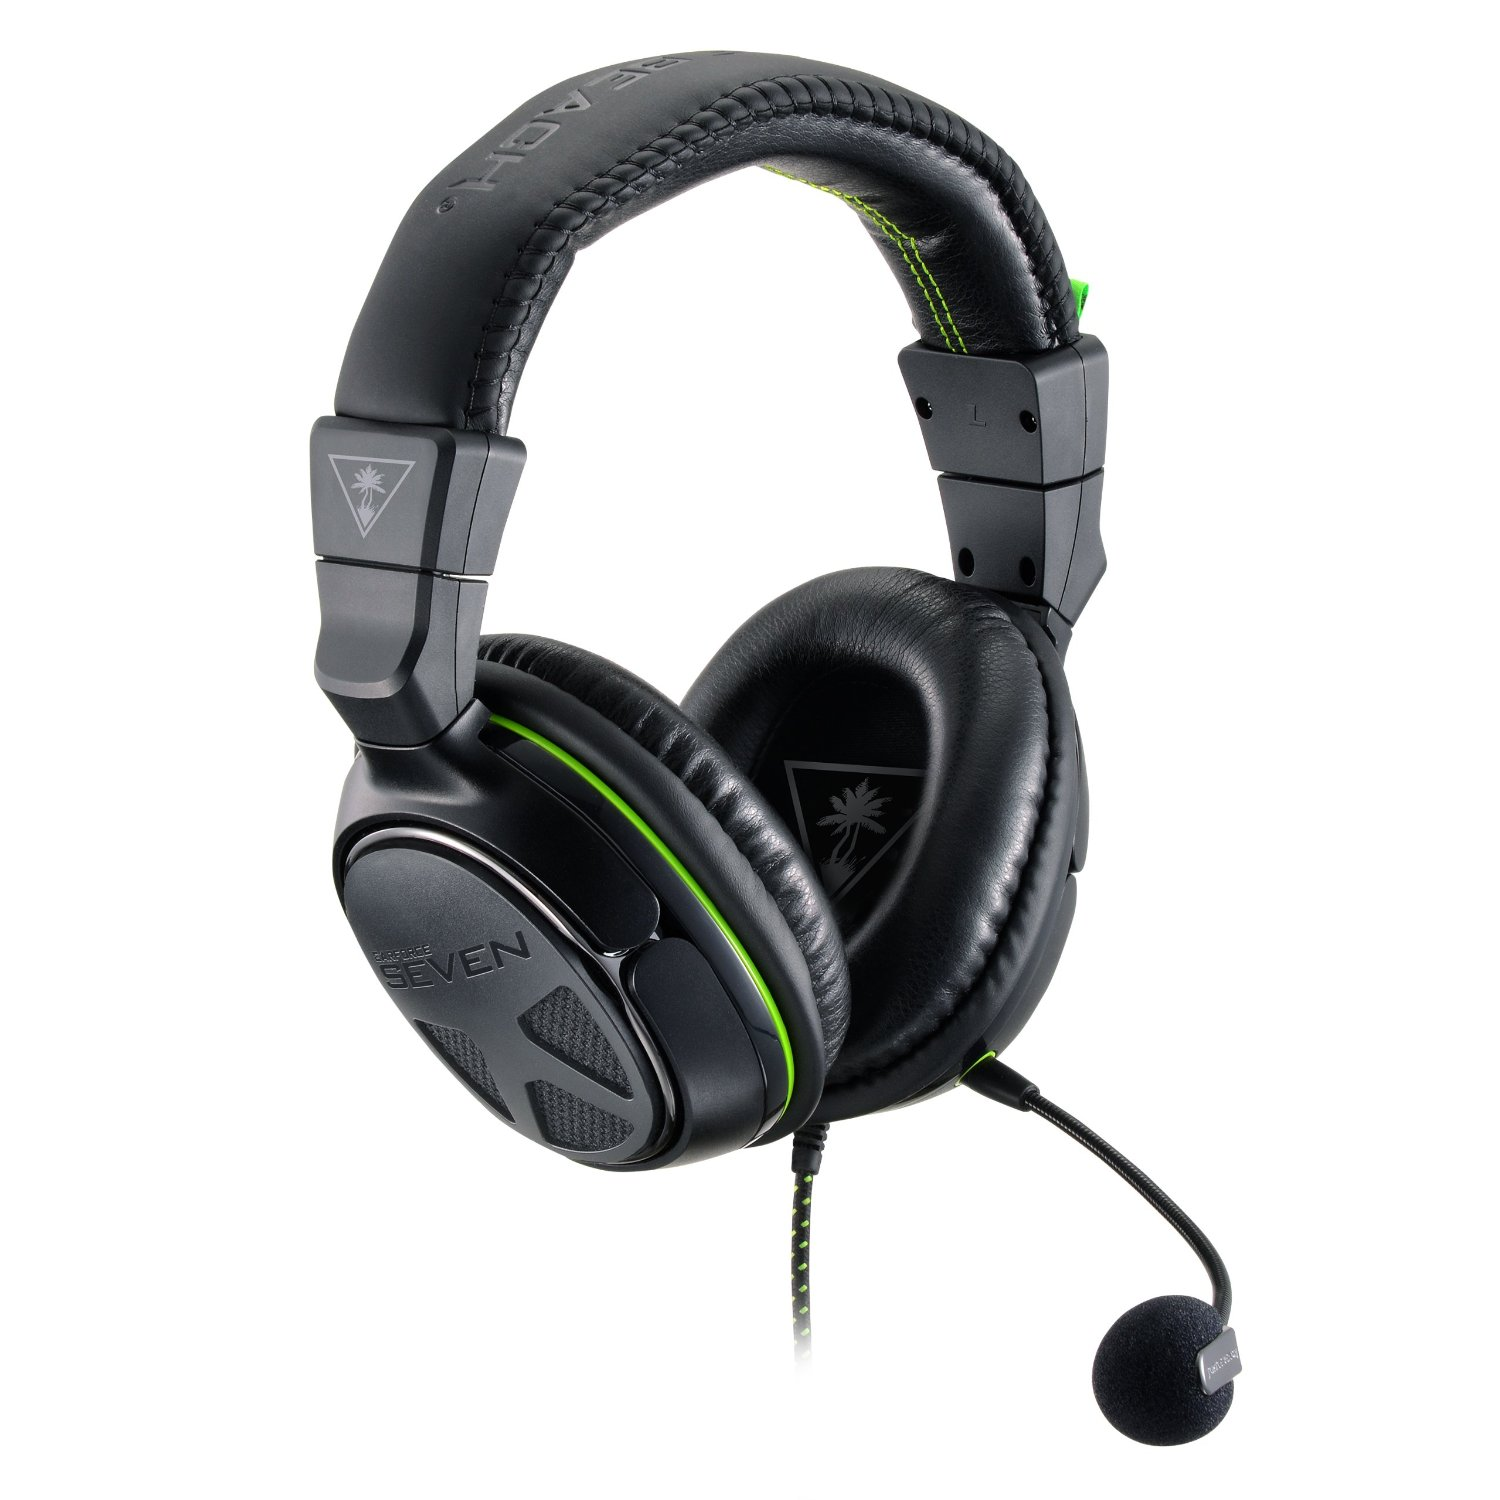 turtle beach ear force xo7 headset xbox one review. Black Bedroom Furniture Sets. Home Design Ideas